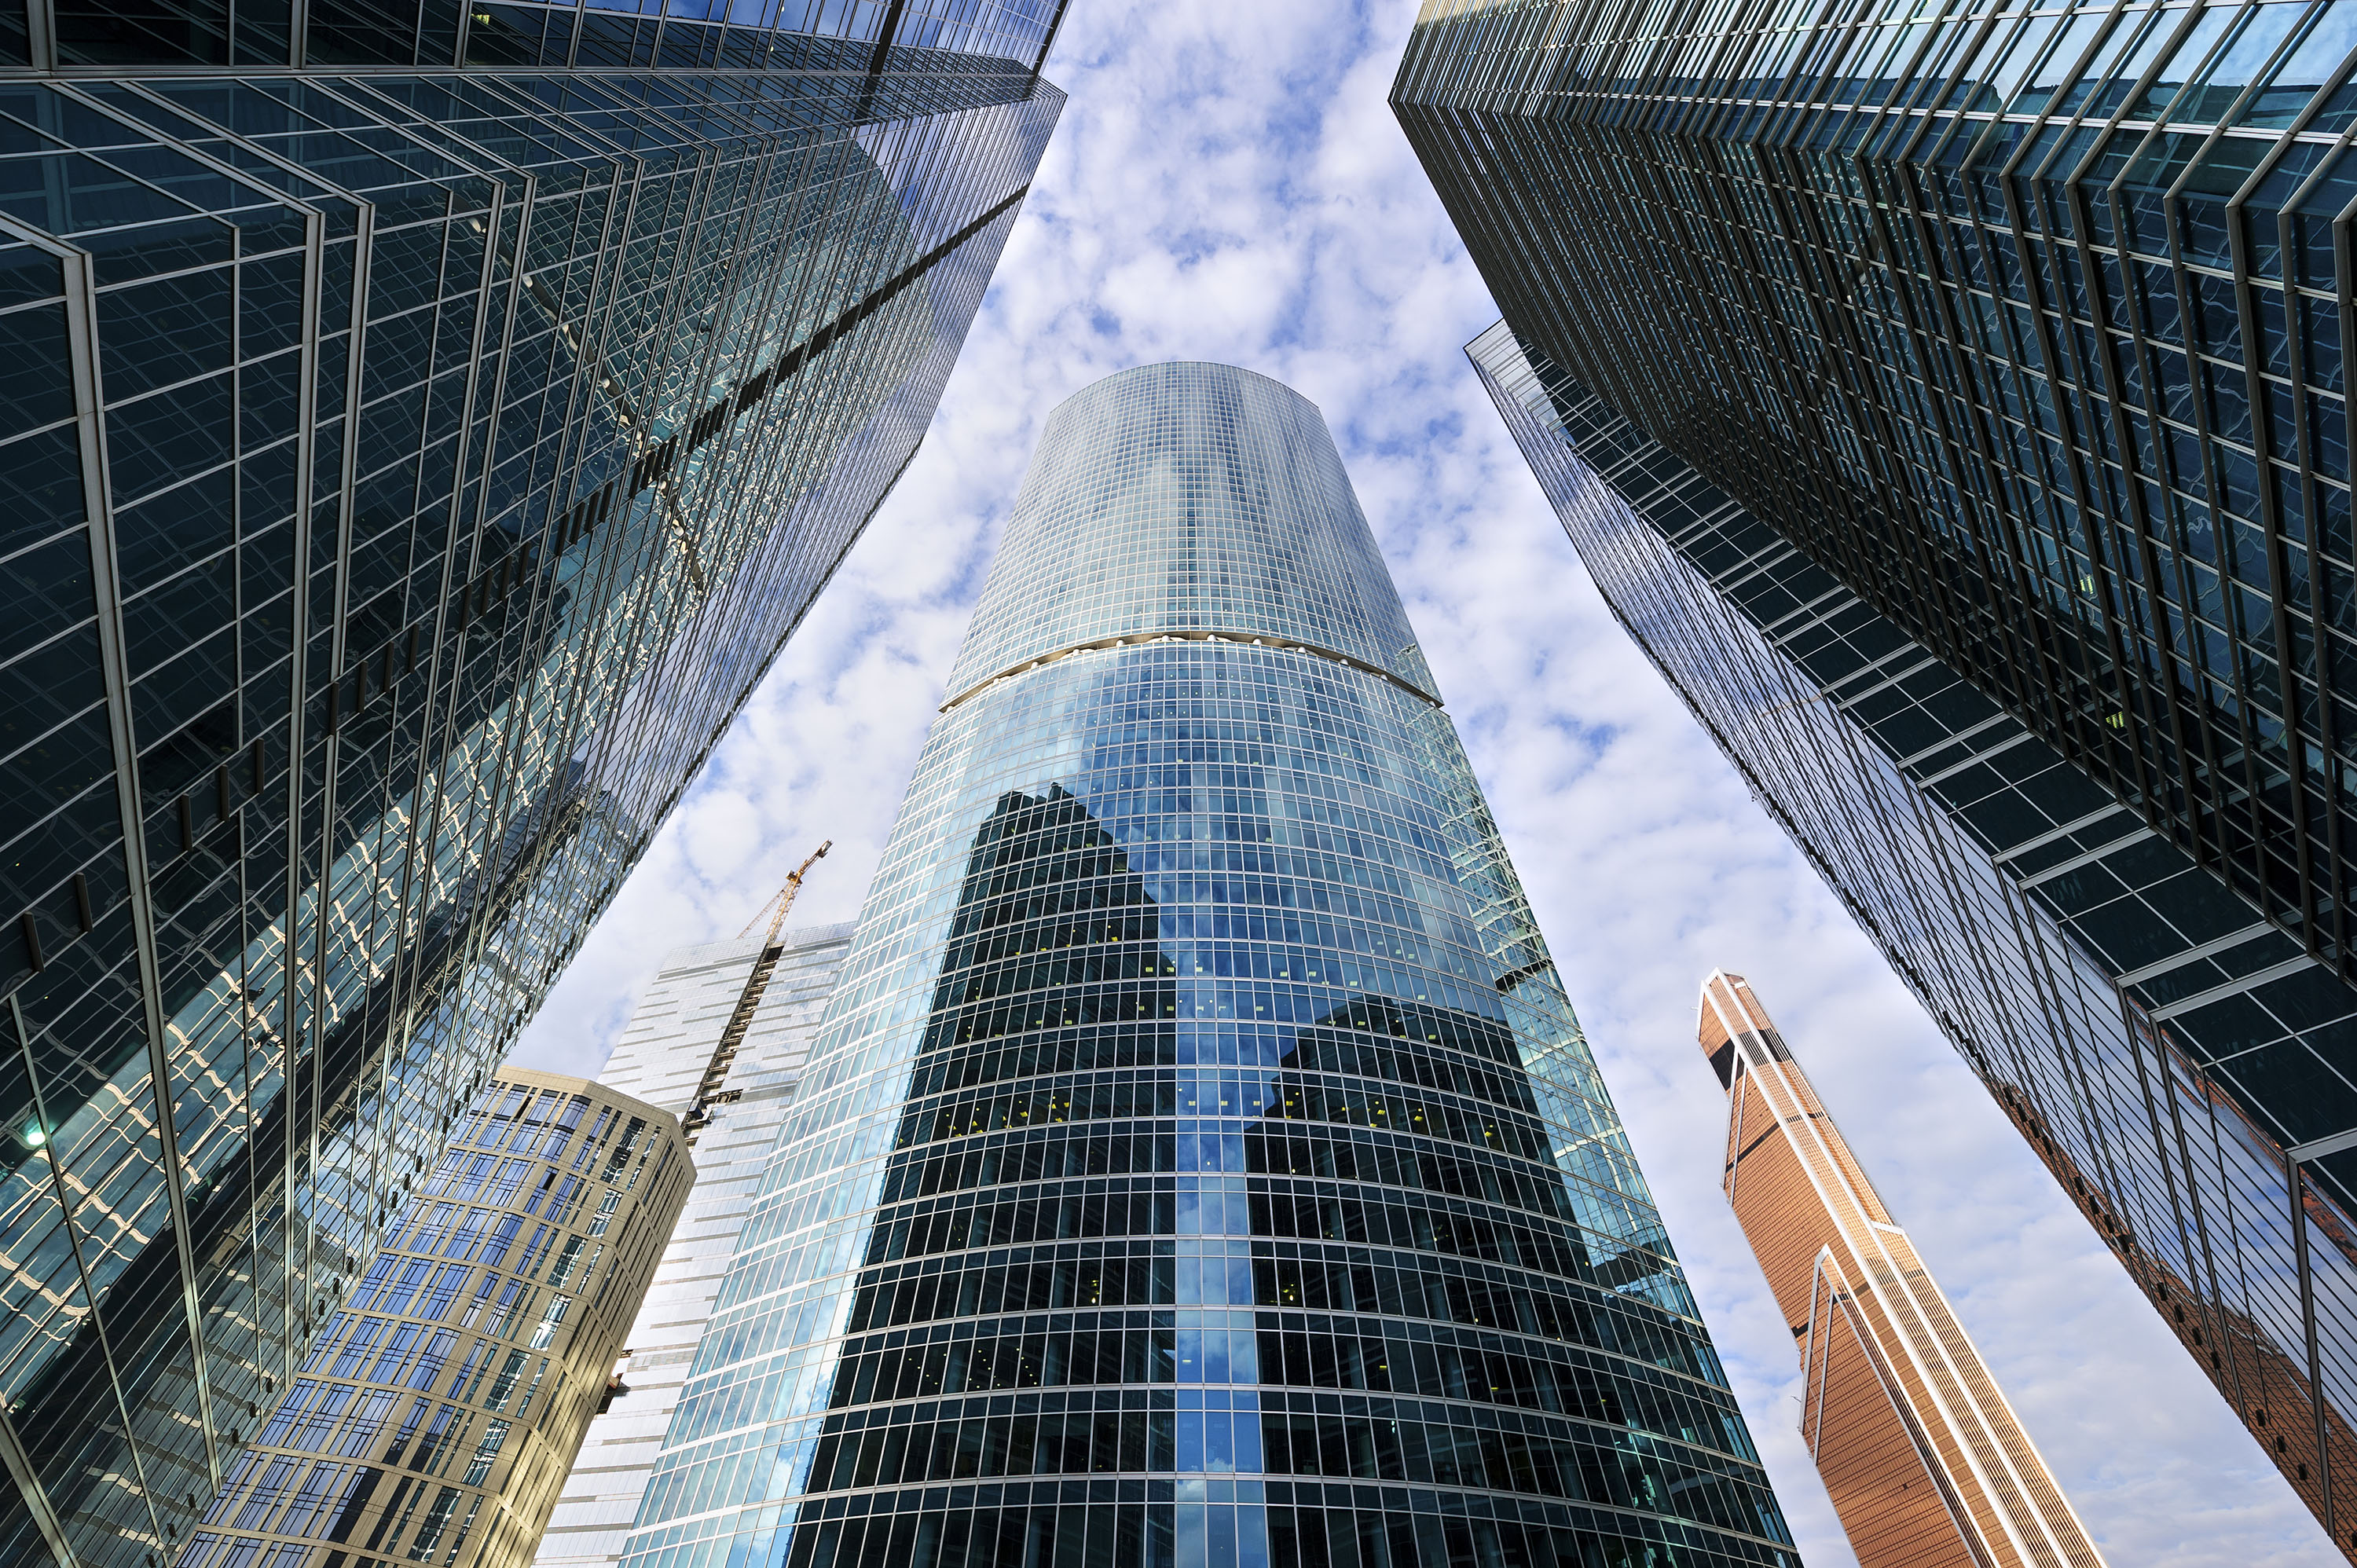 Private companies: Are you on track to meet the 2022 deadline for the updated lease standard?